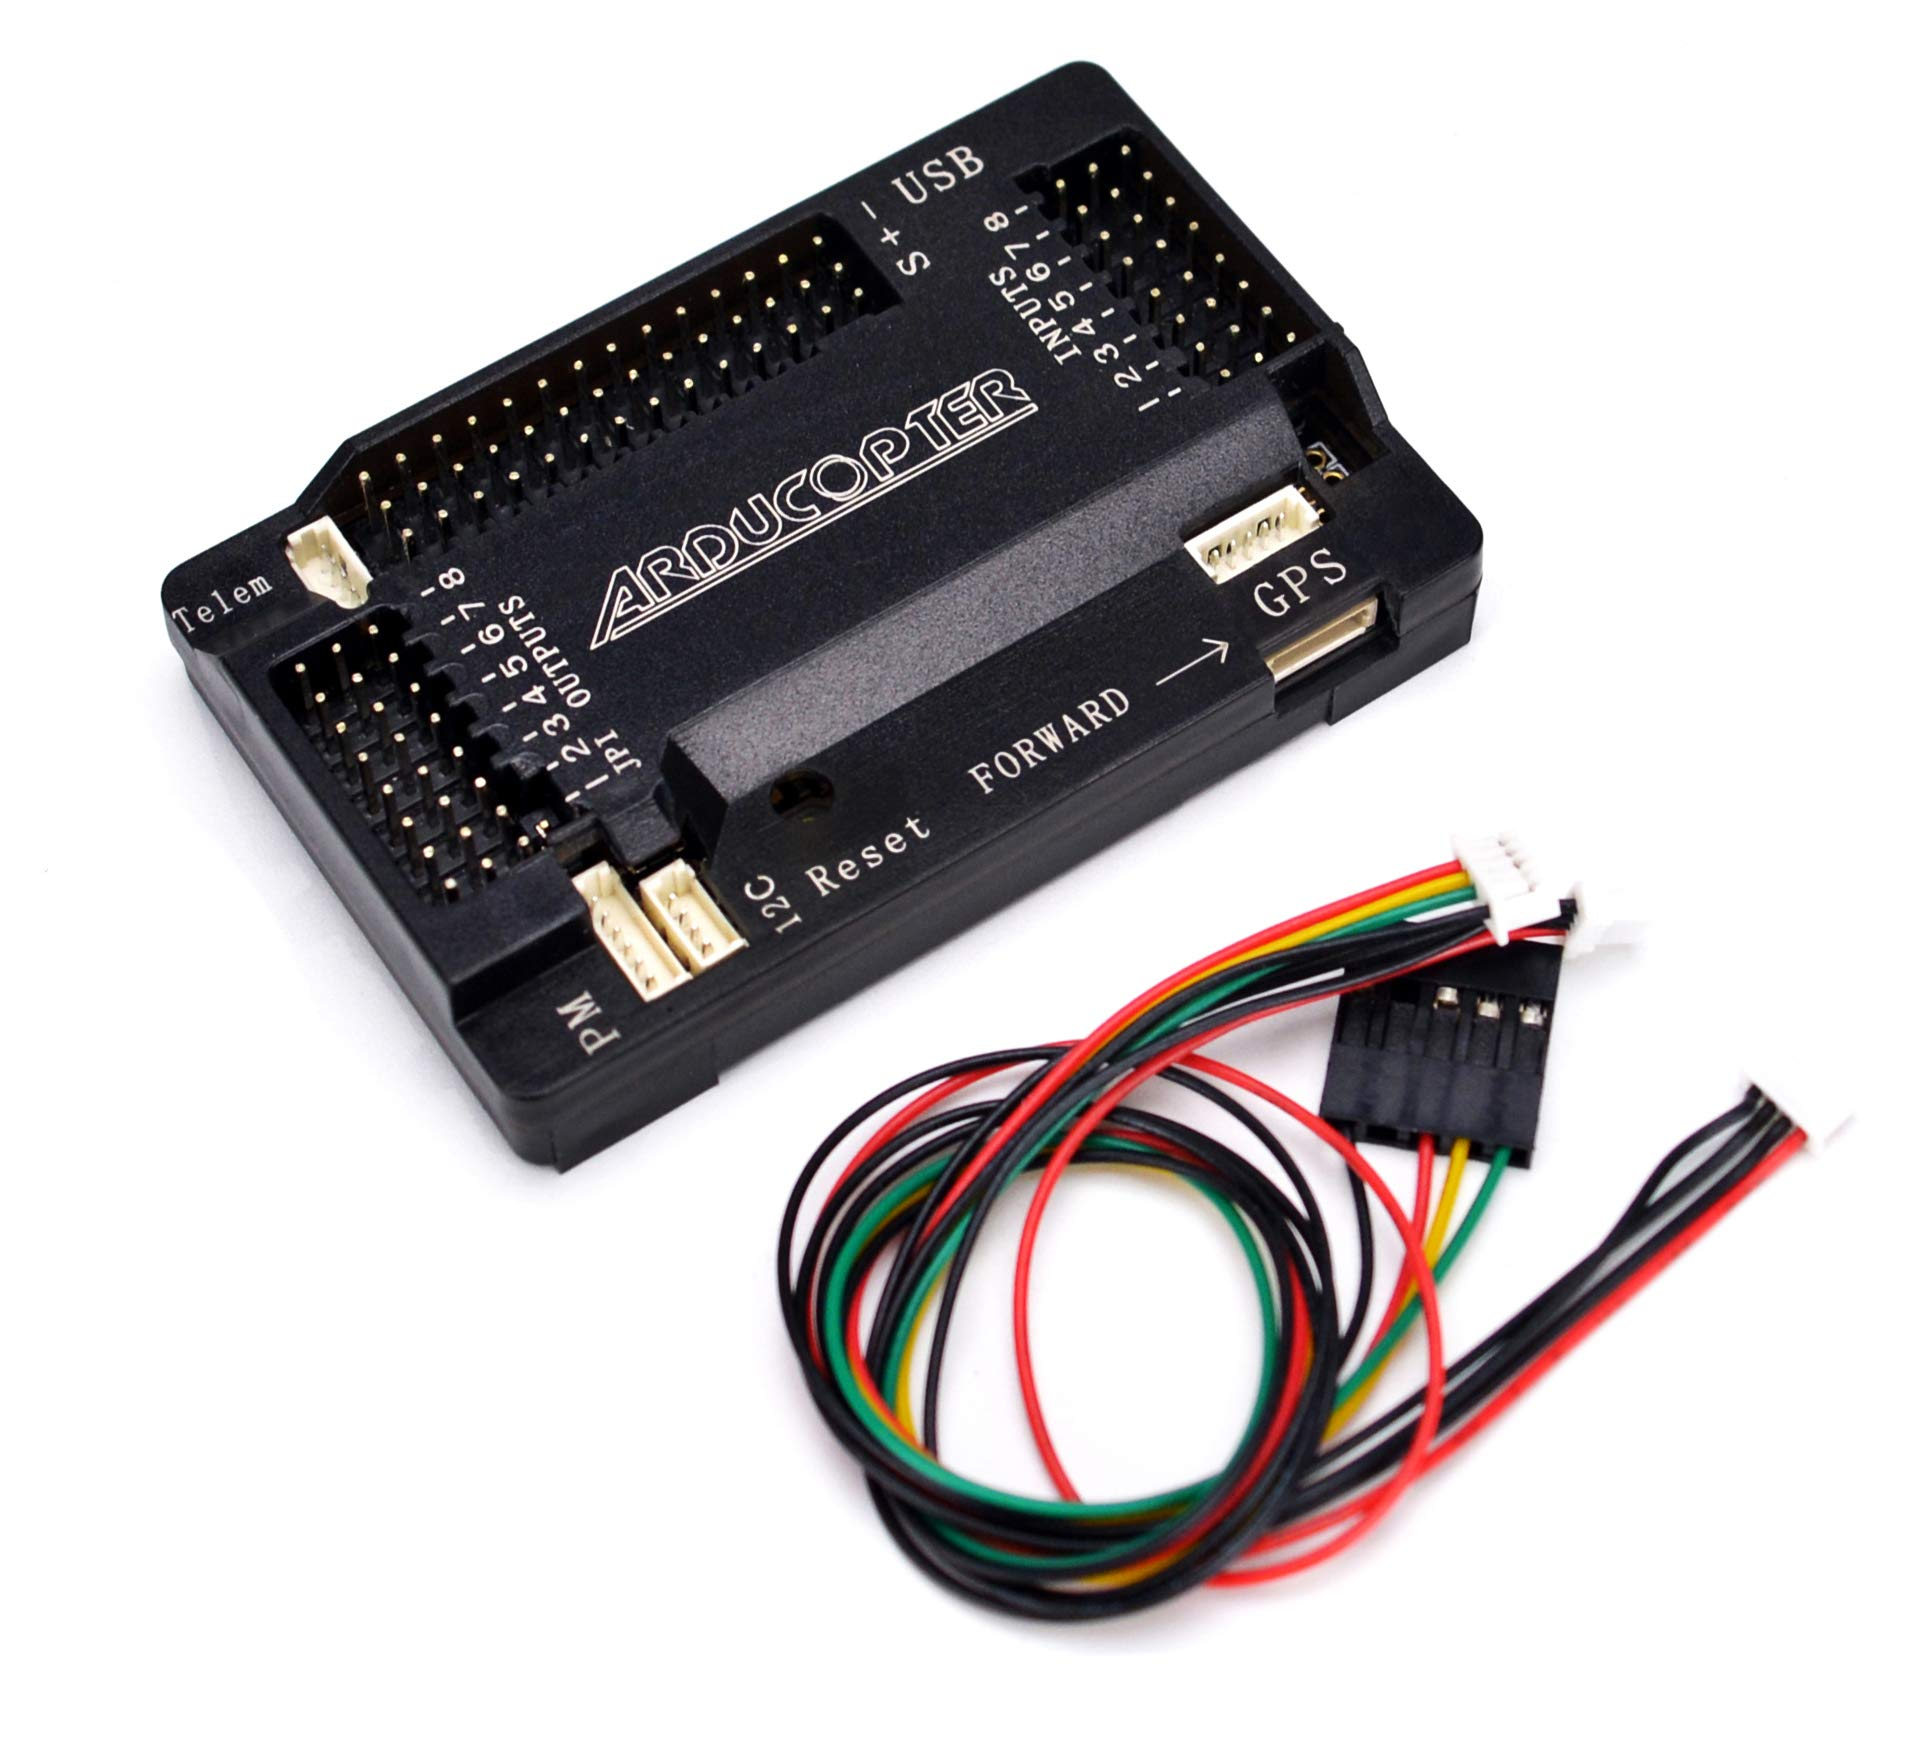 APM2.6 Flight Controller Board with Top-Pin Connector for ArduPilot Mega 2.6 Flight Control Board